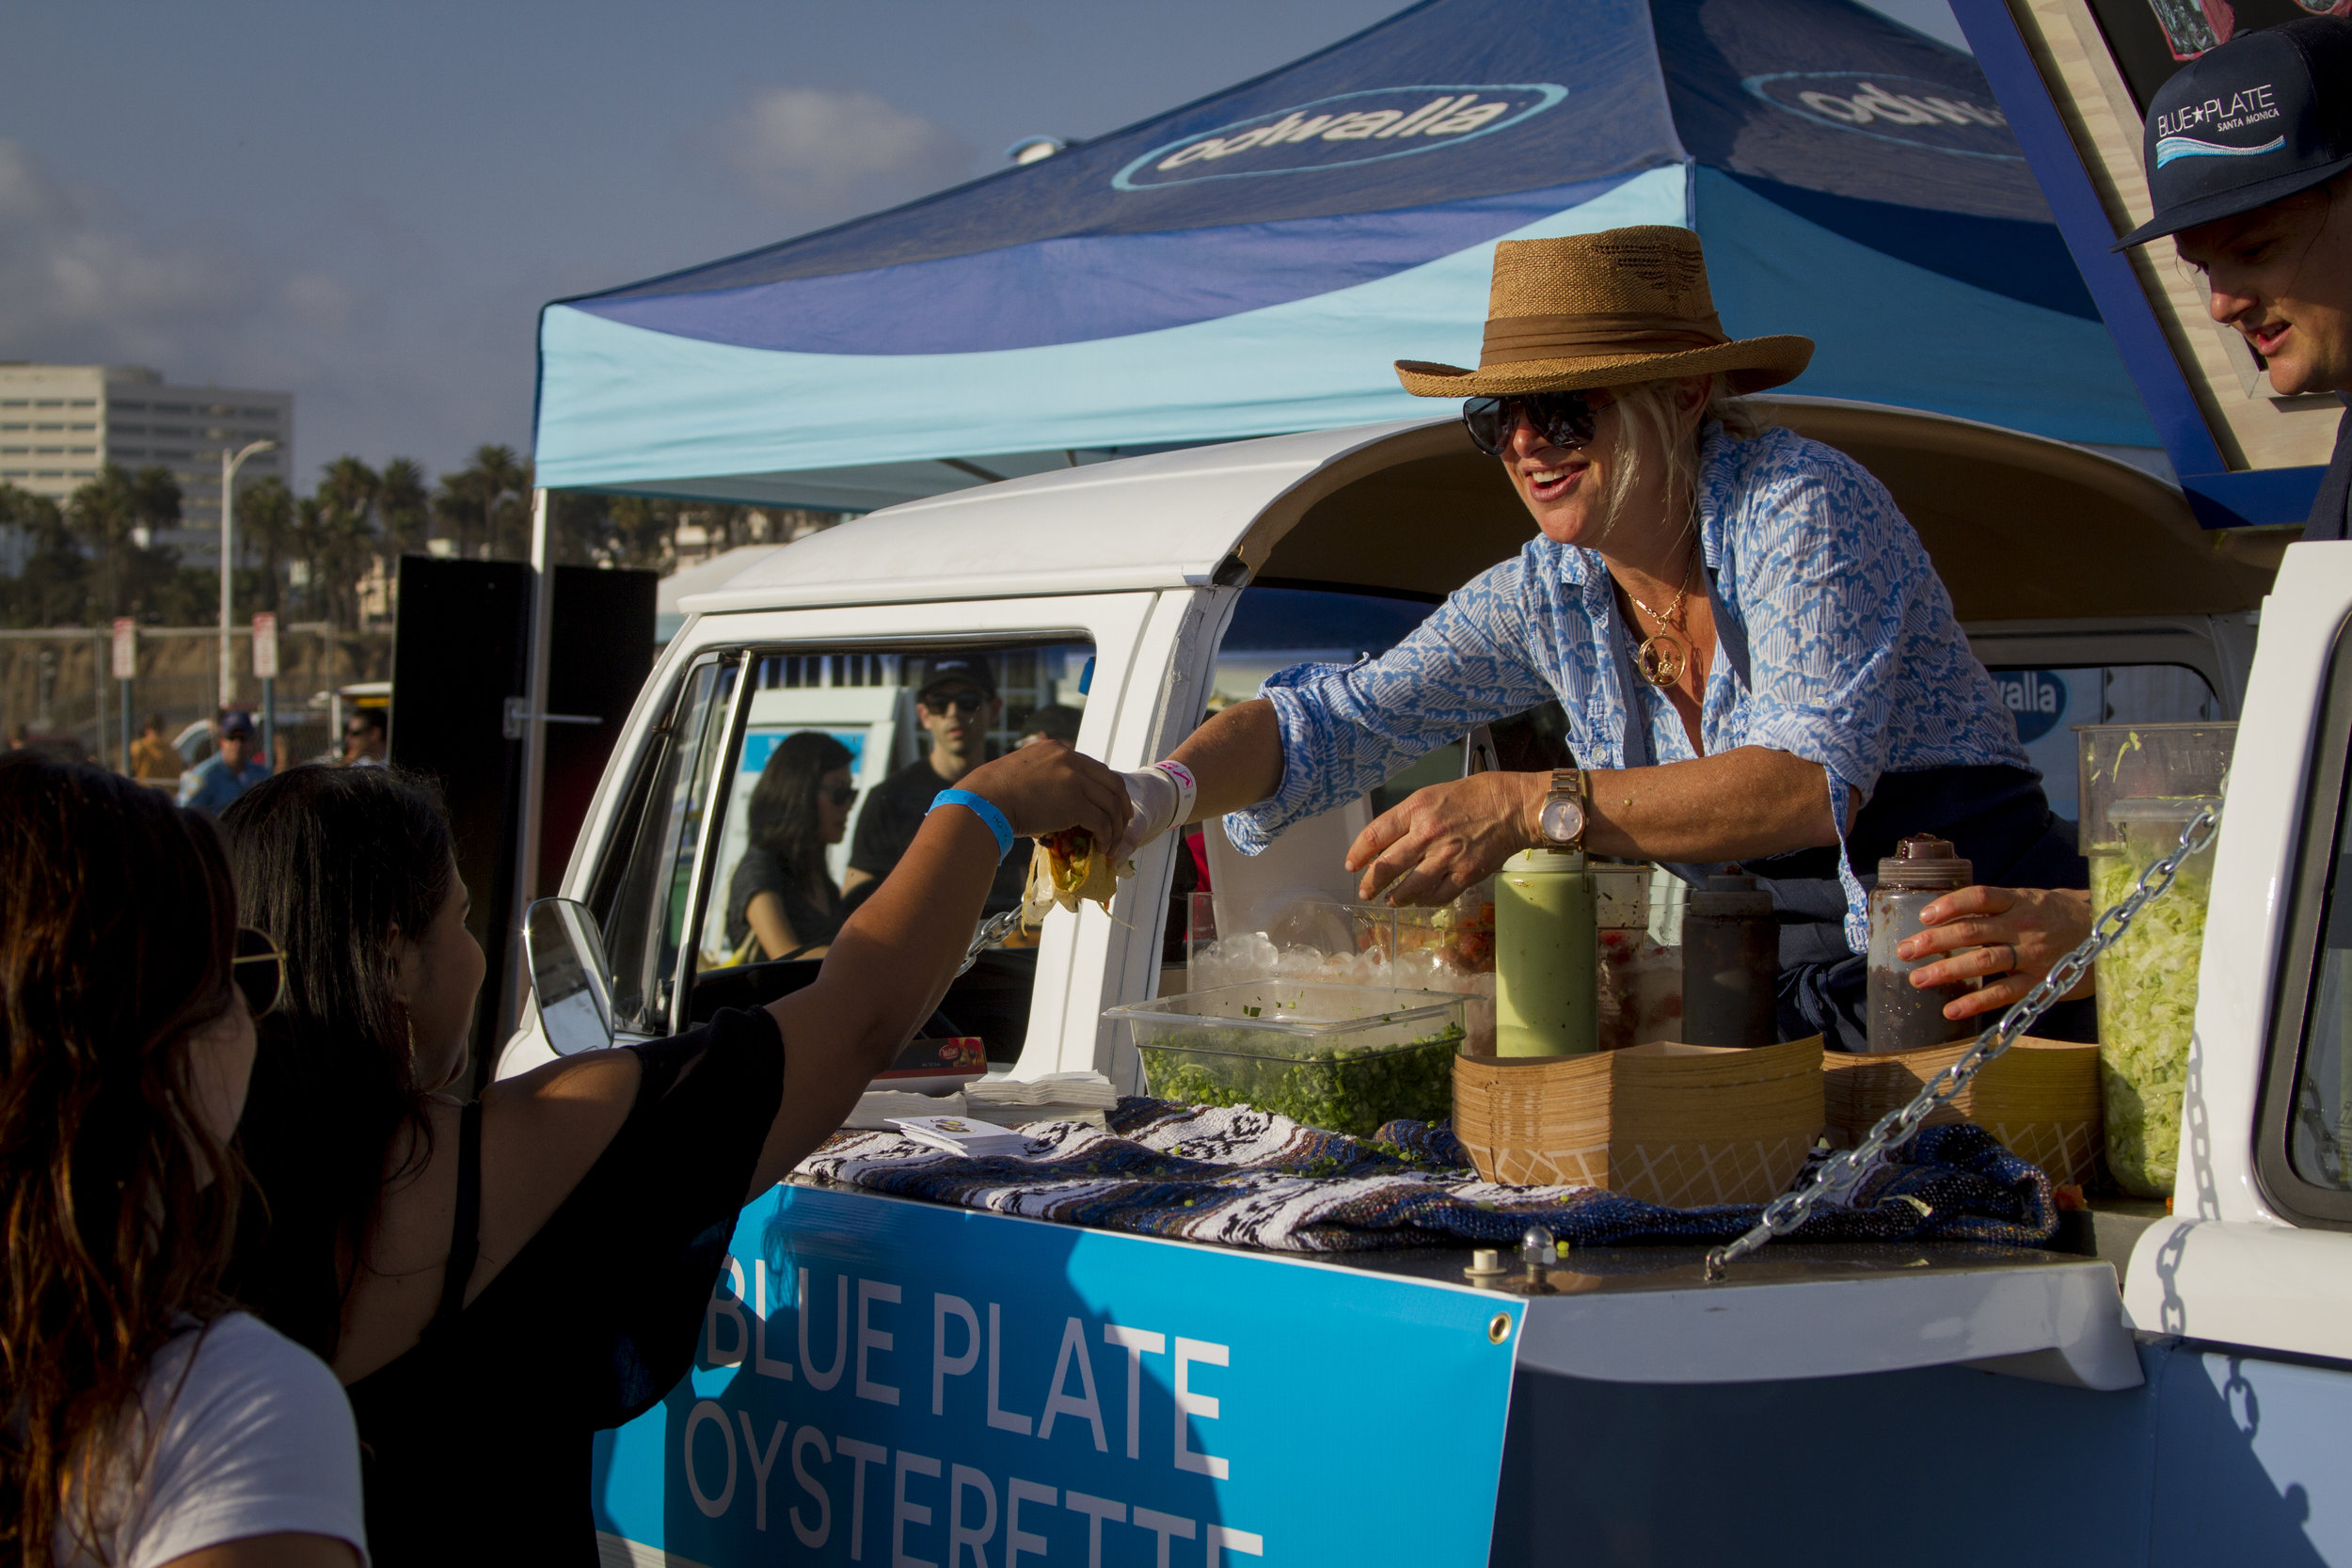 Blue Plate Oyster Mobile